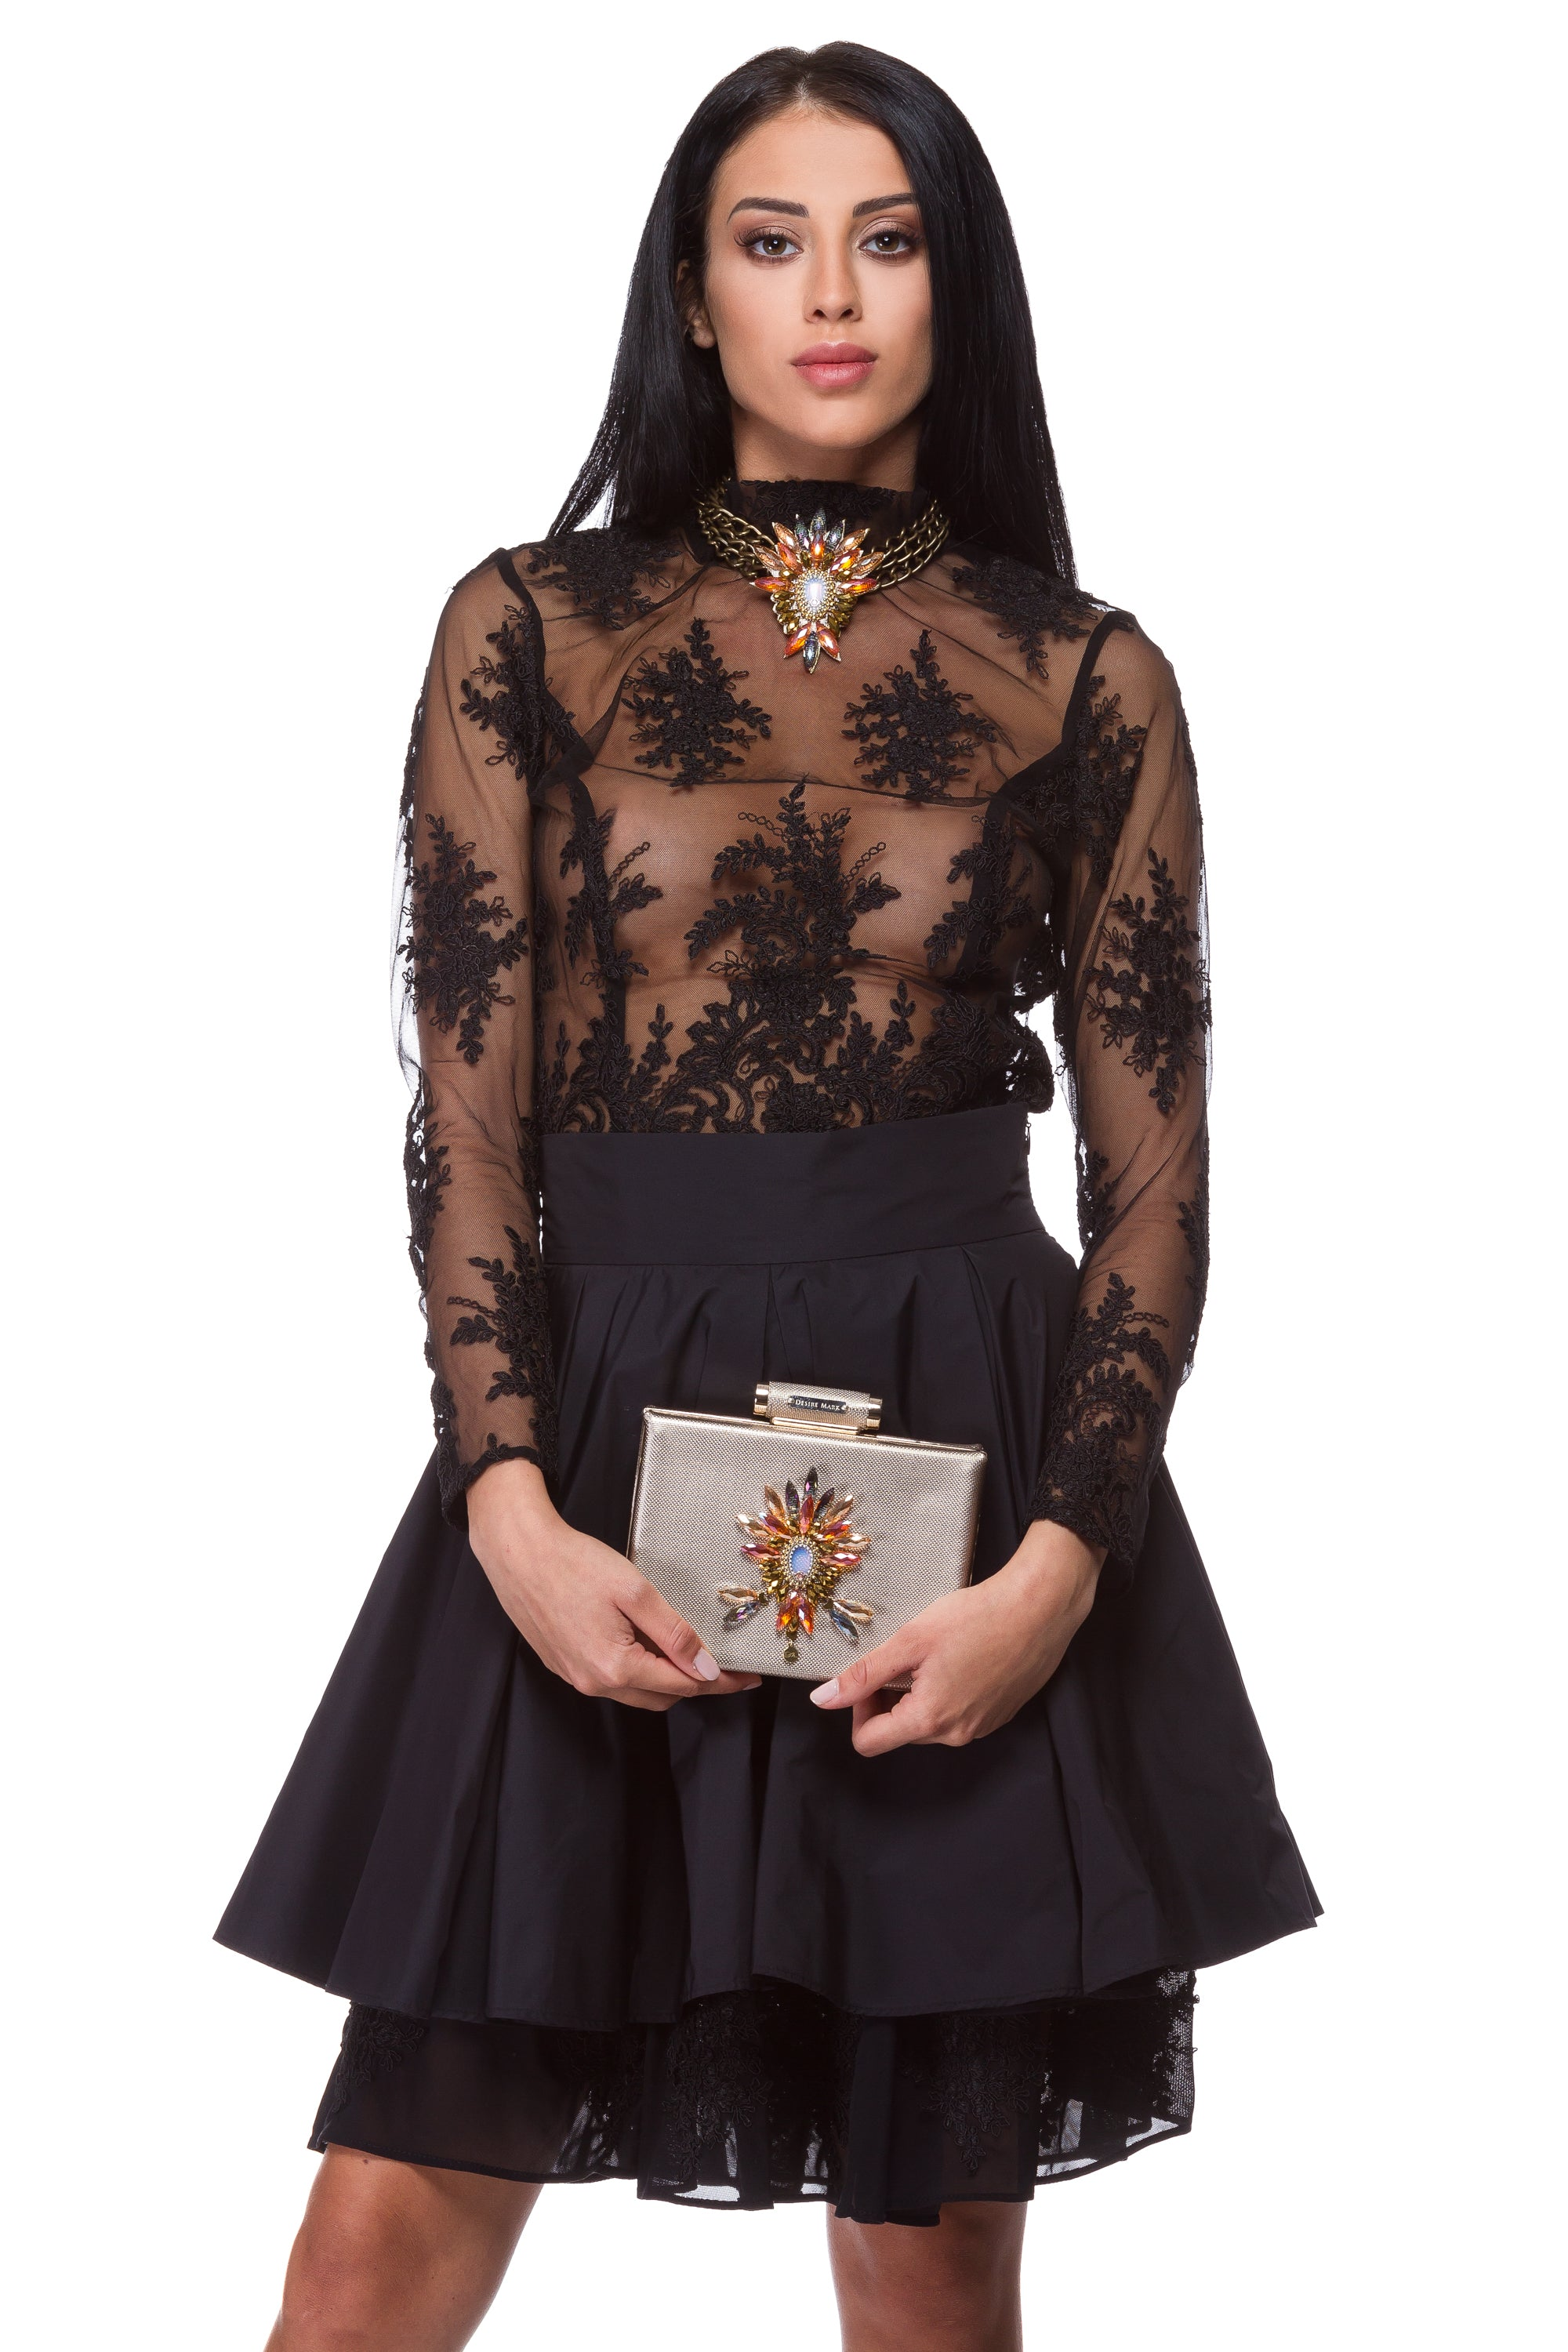 Transparent black lace blouse WBL-0003